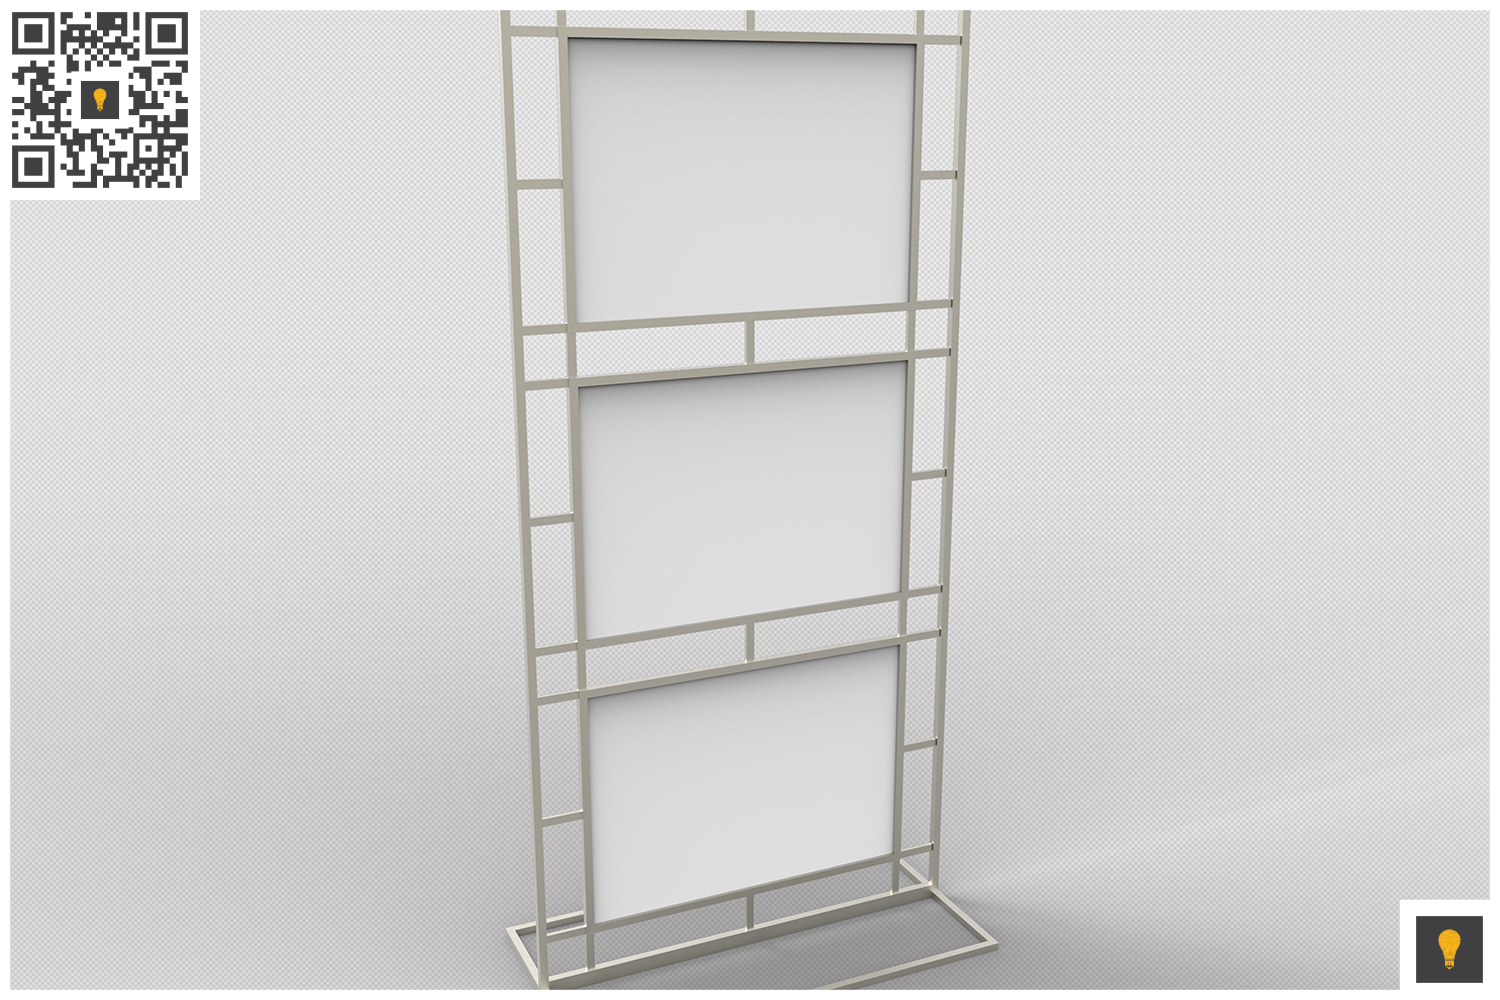 Poster Stand Display 3D Render example image 3